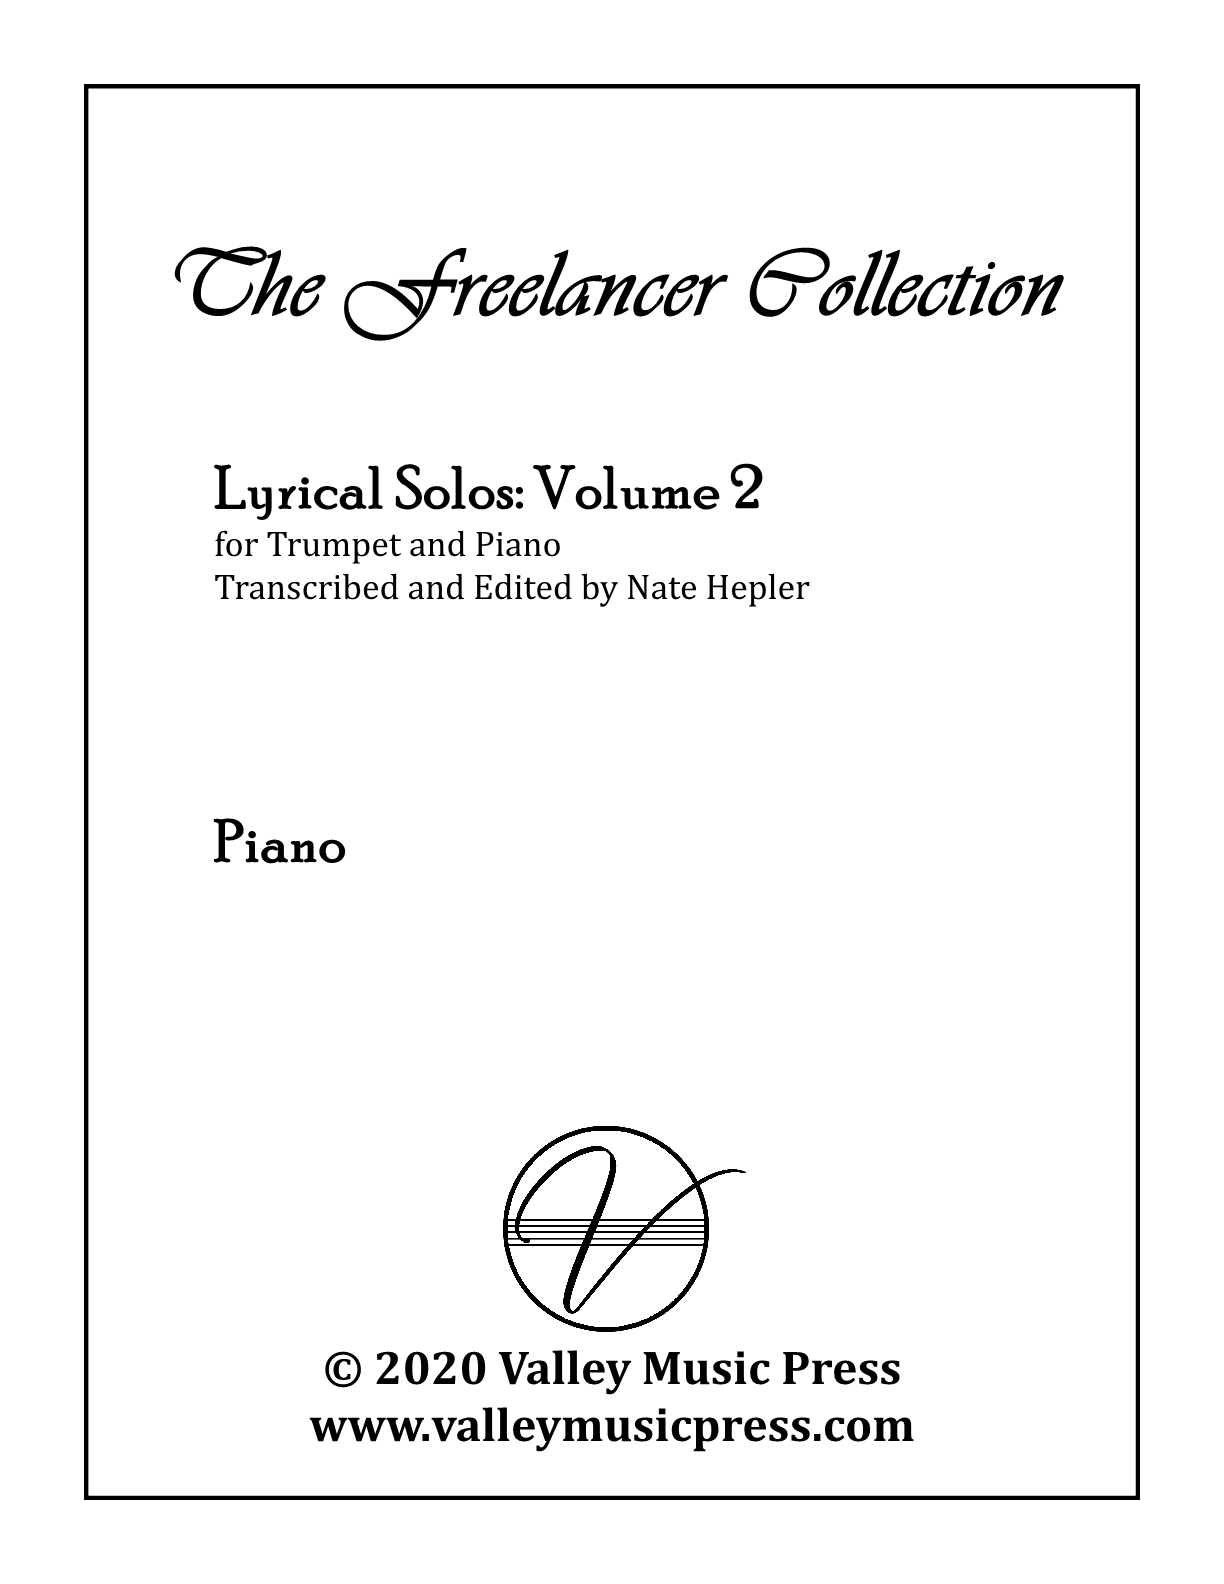 Hepler - Freelancer Collection Lyrical Solos Vol 2 (Trp & Piano)